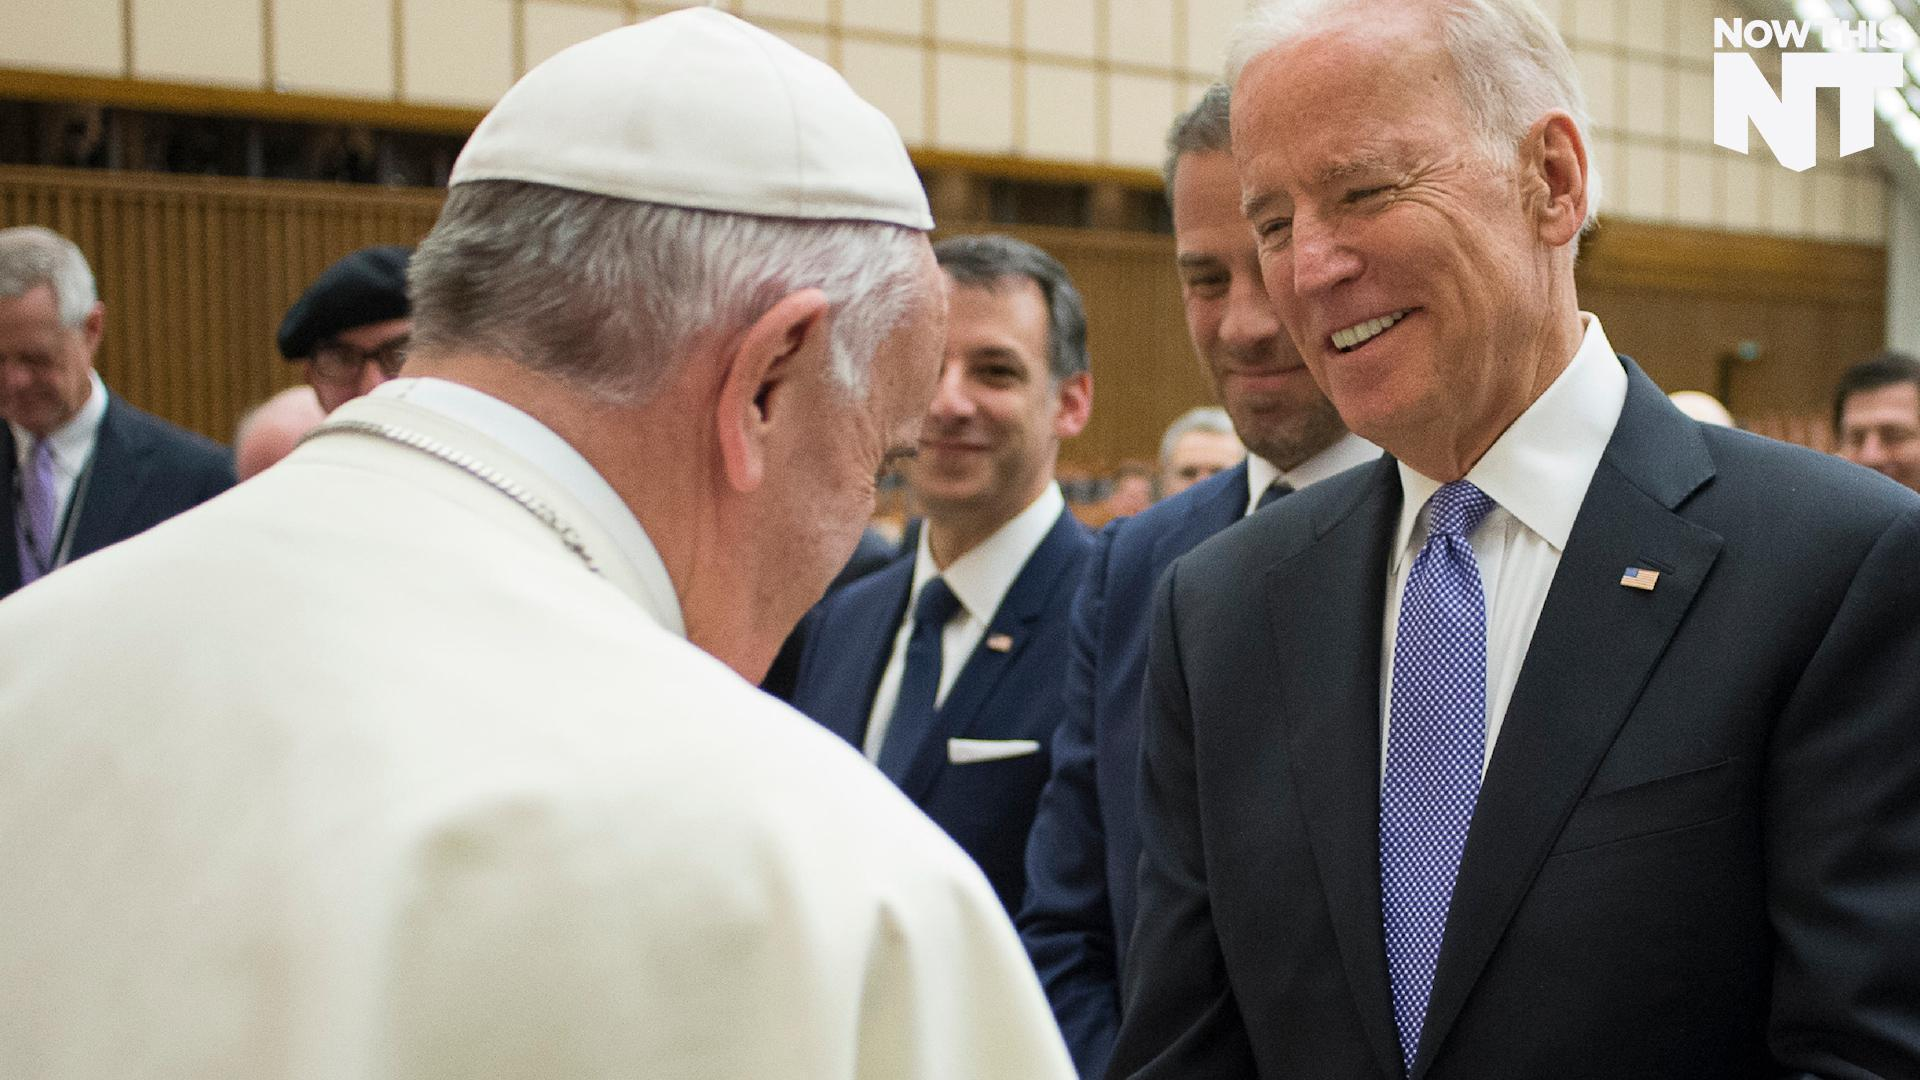 Joe Biden Says The Pope Comforted Him After His Son's Death